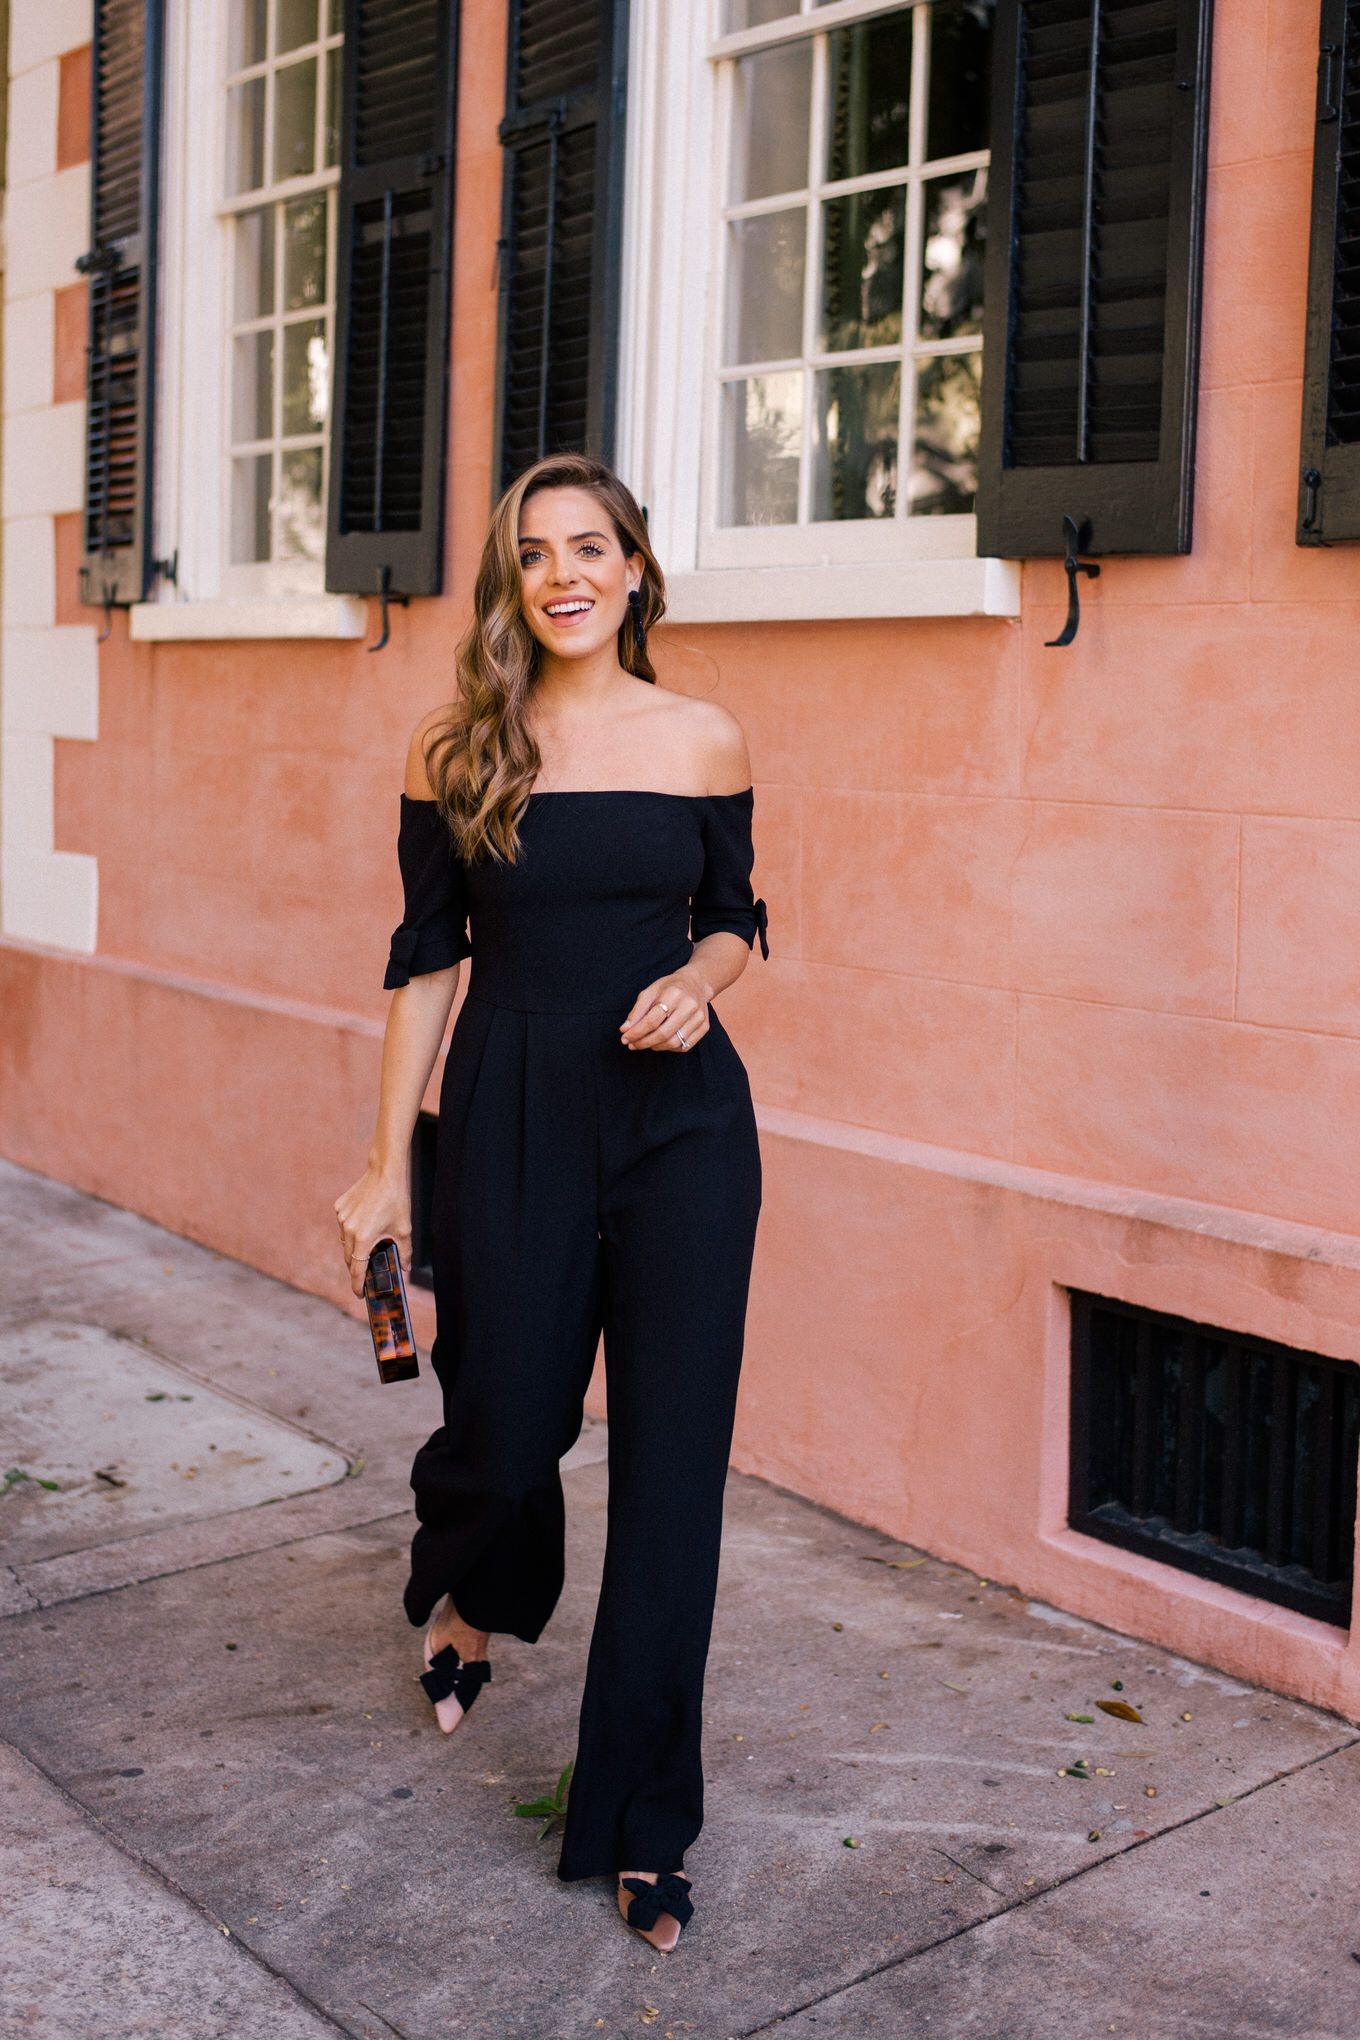 The Black Jumpsuit You Ll Wear All Holiday Season Long Gal Meets Glam Black Jumpsuit Black Jumpsuit Outfit Night Fashion [ 2040 x 1360 Pixel ]